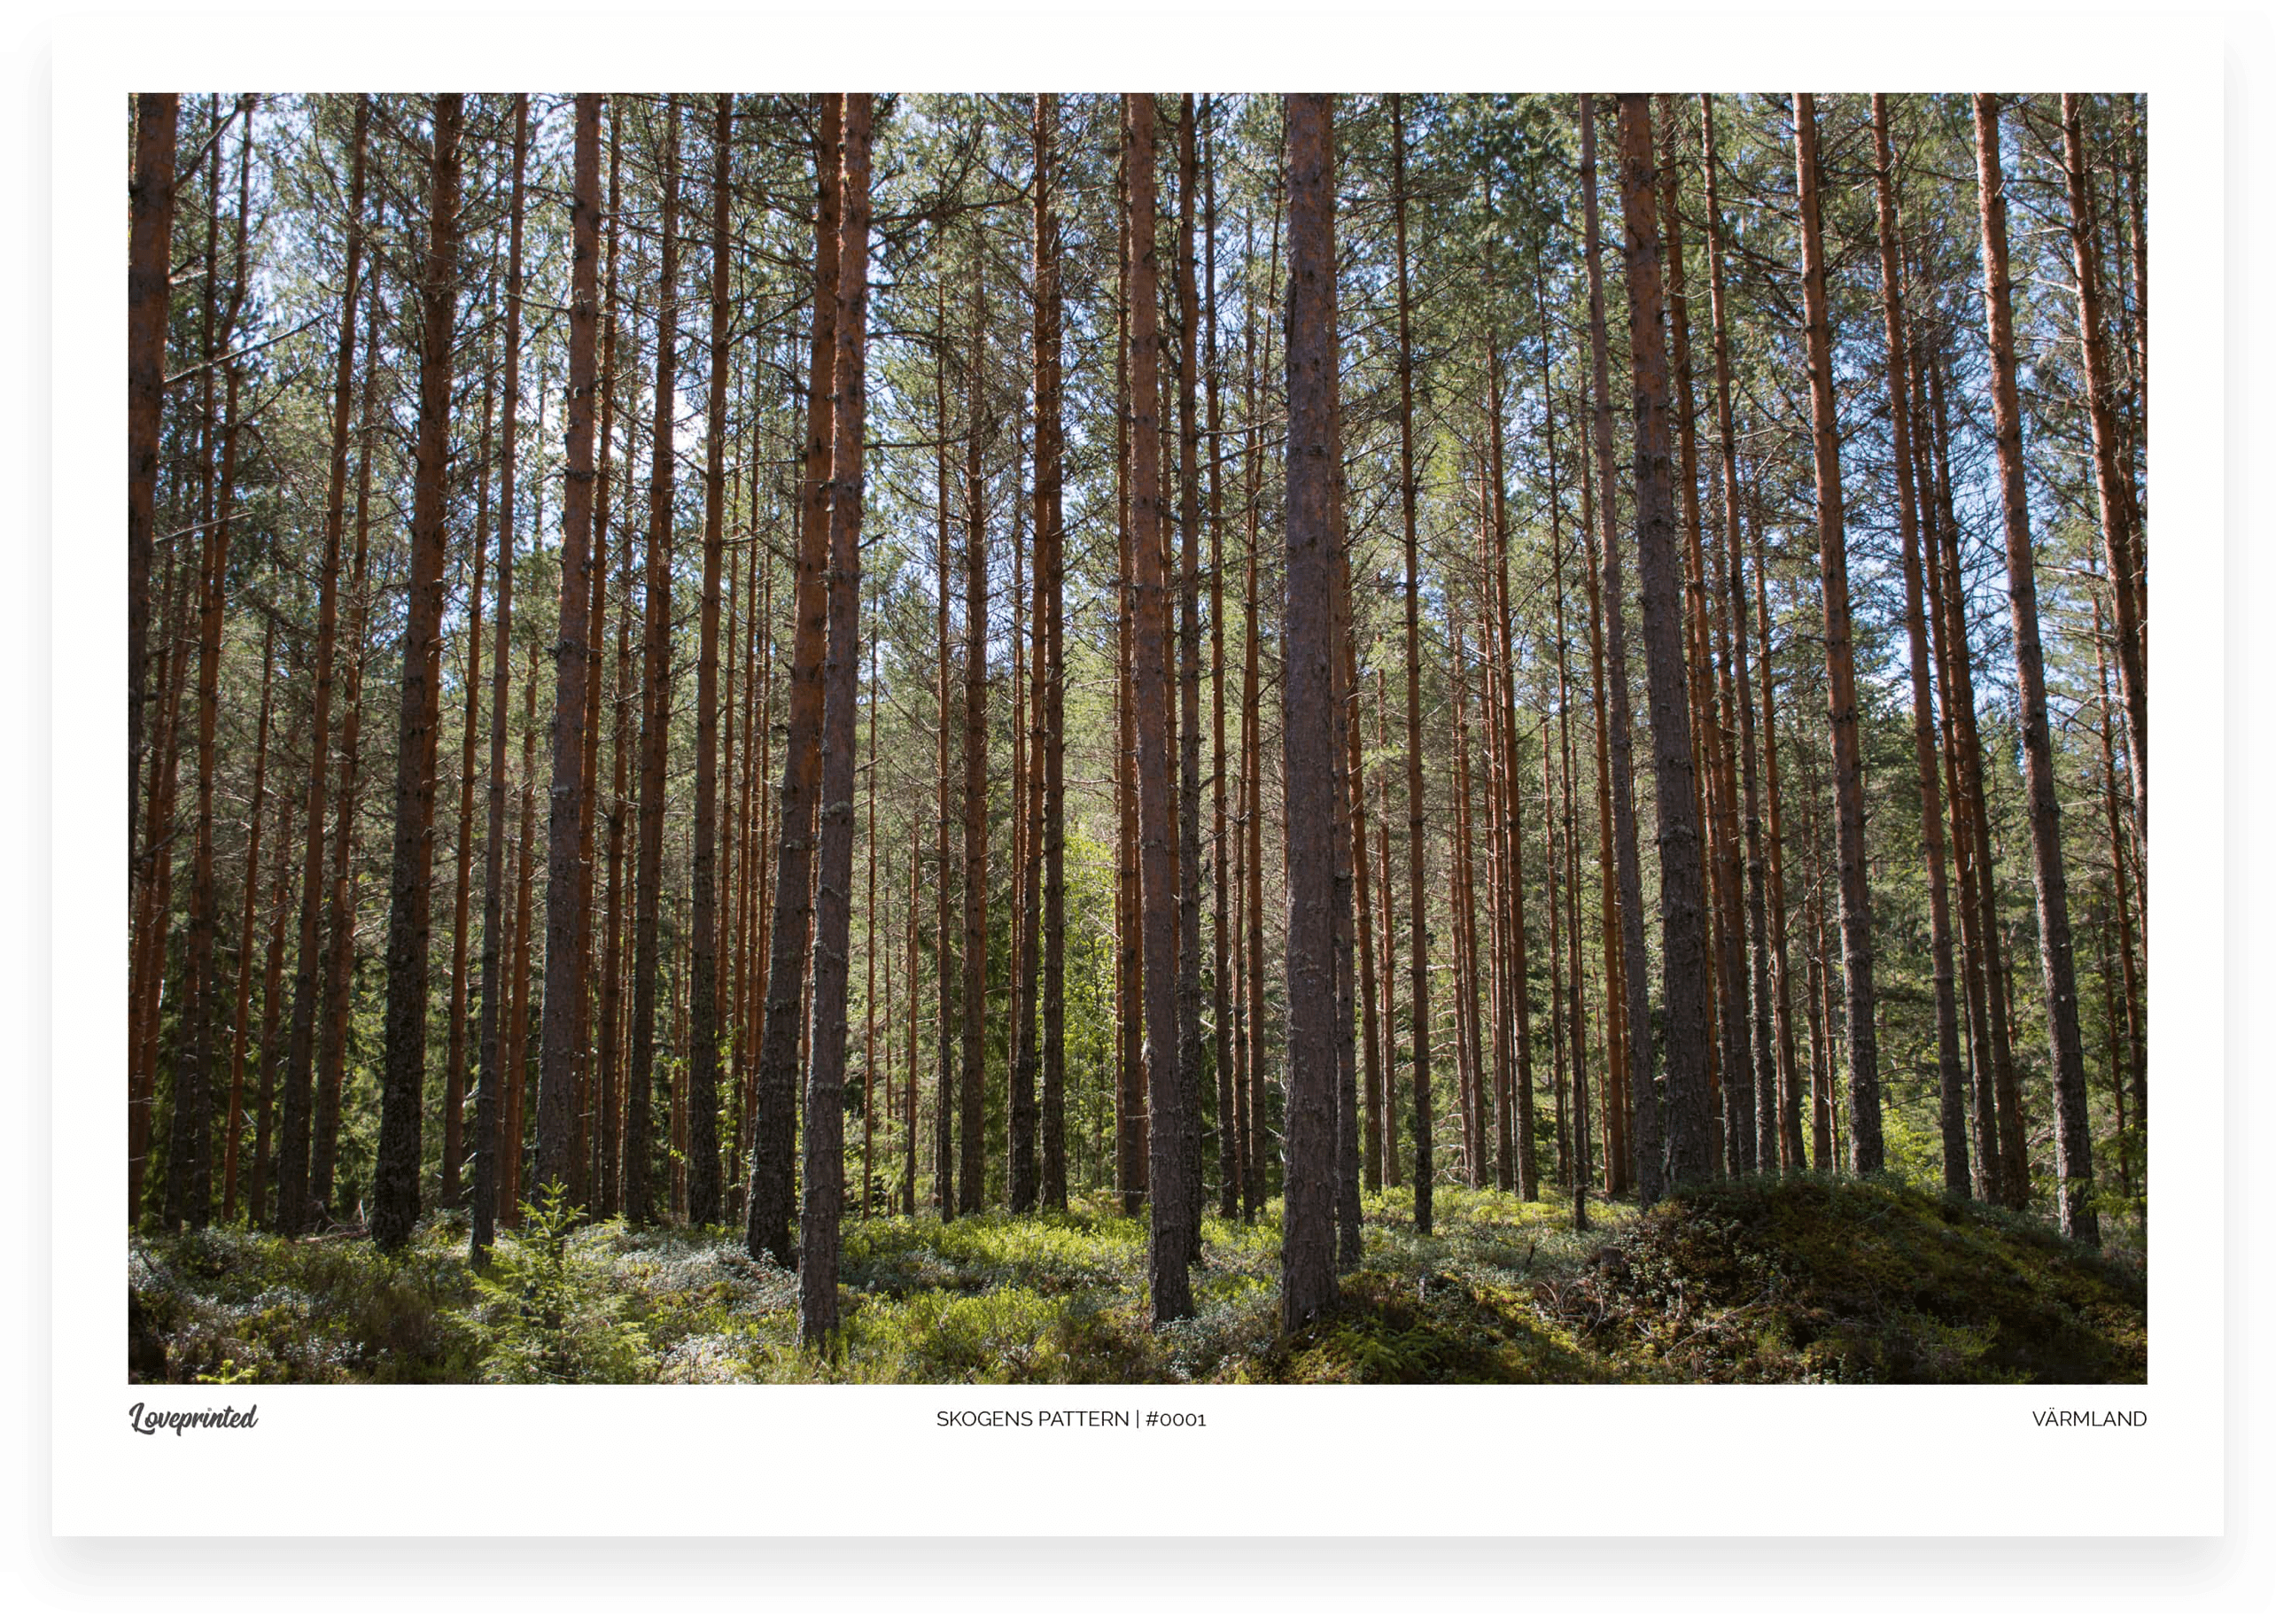 Skogens pattern | An Image of a Swedish Forest made by Loveprinted